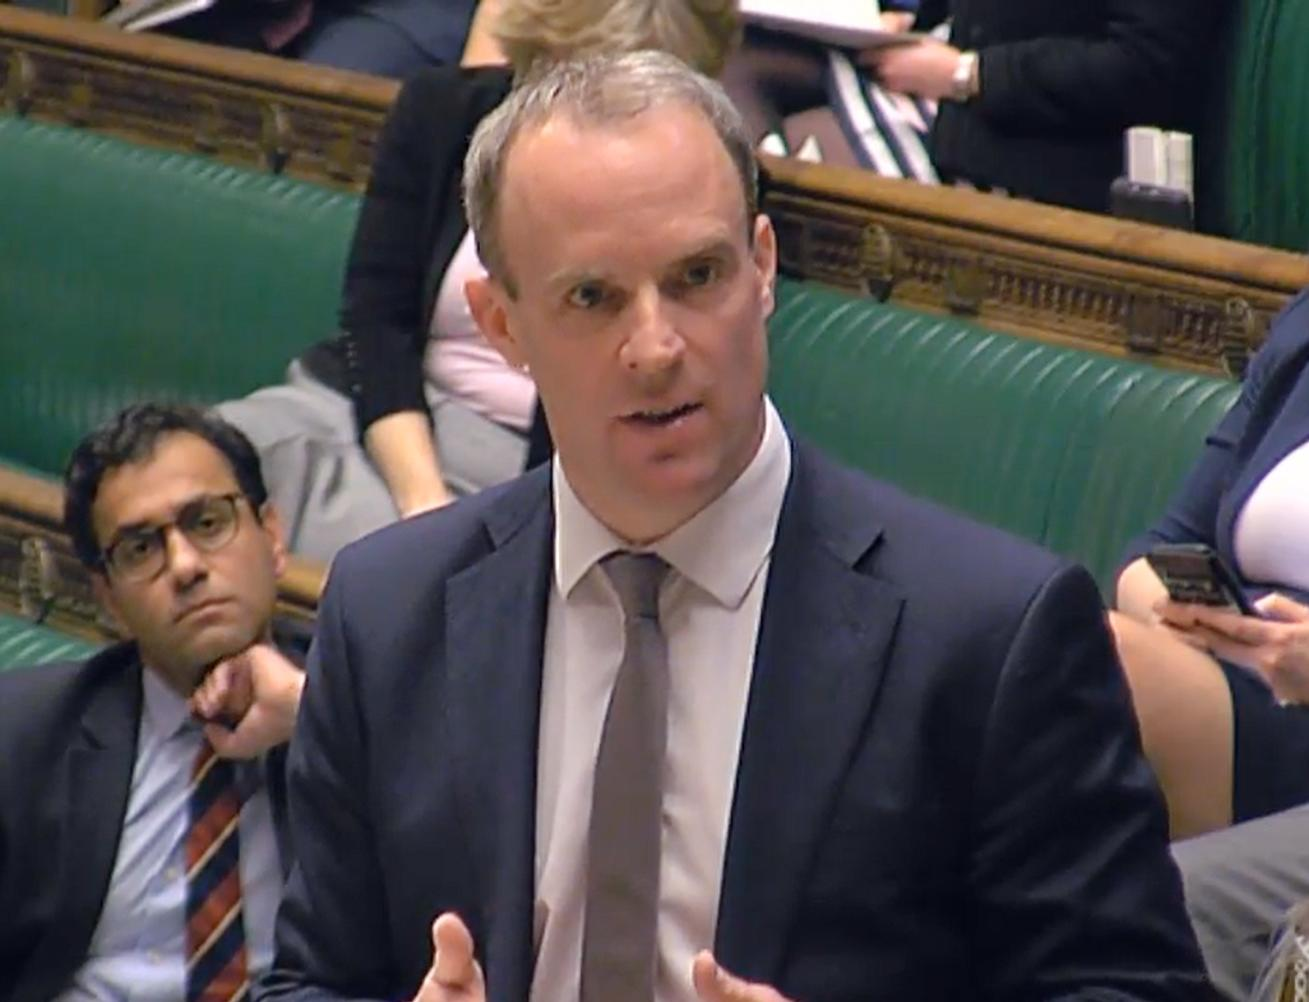 Foreign Secretary Dominic Raab speaking in the House of Commons in London, where he told MP that the Foreign Office is advising against all non-essential foreign travel for an initial period of 30 days. (Photo by House of Commons/PA Images via Getty Images)